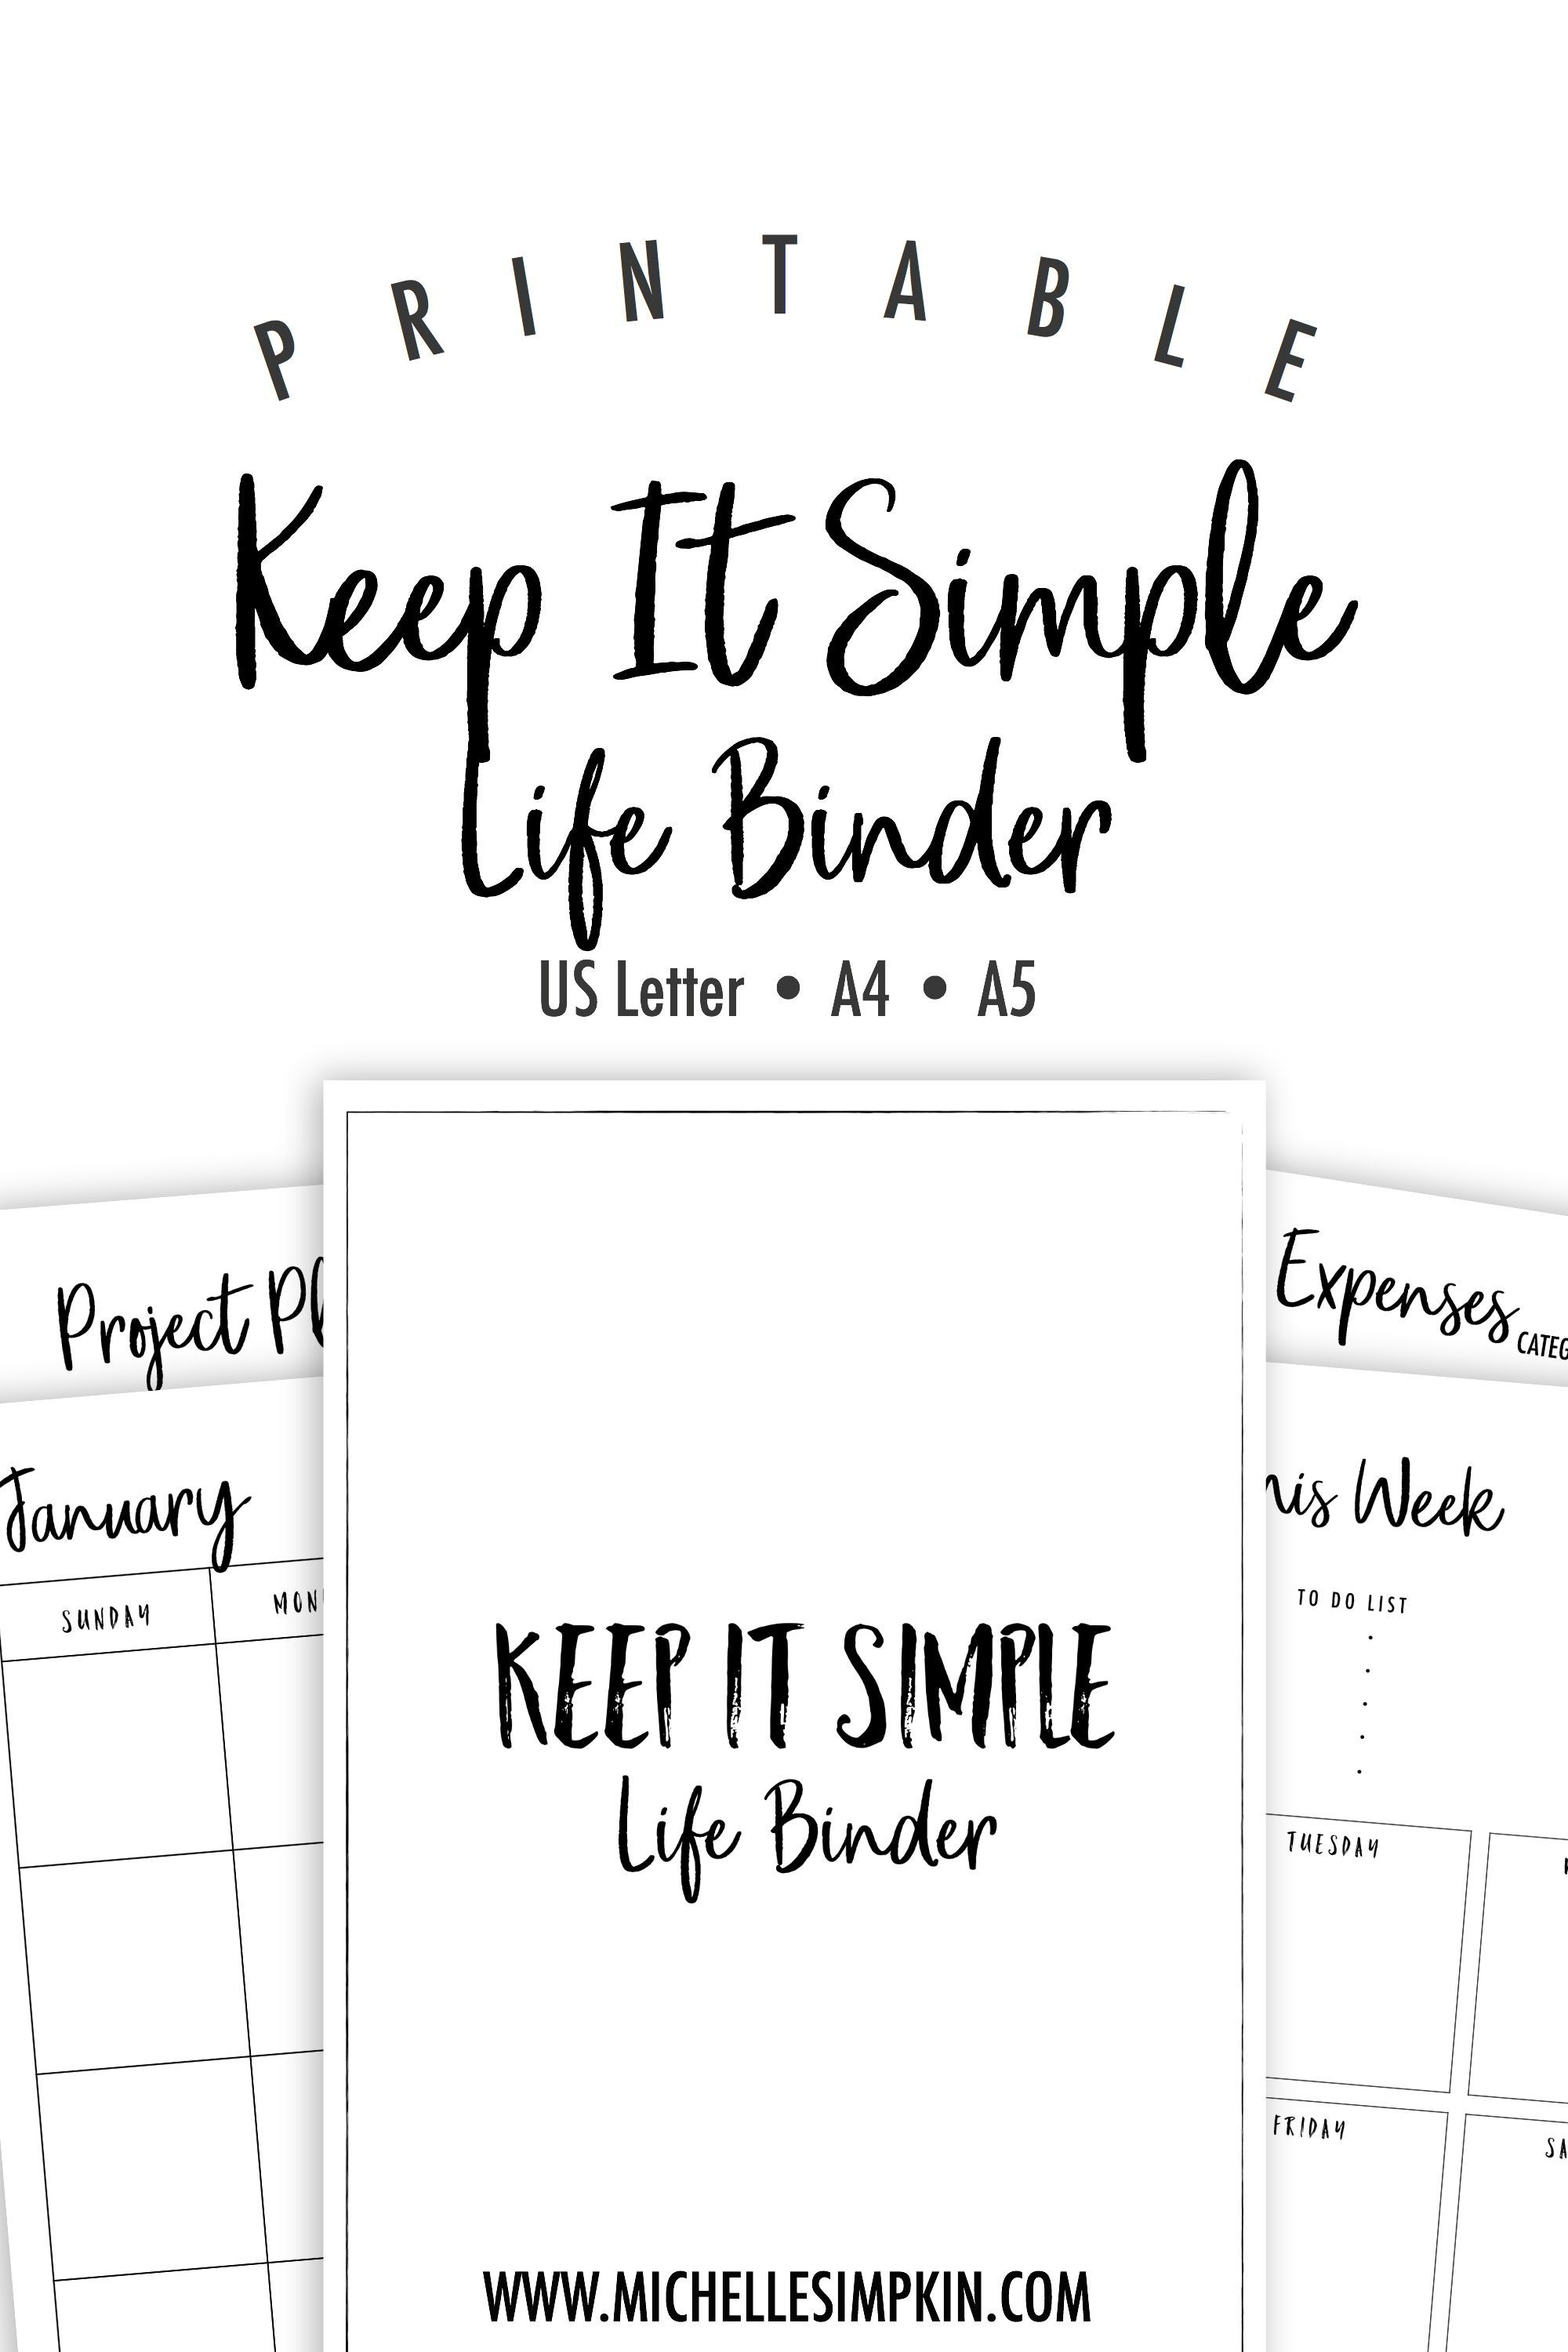 This simple, ink-friendly Life Binder has everything you